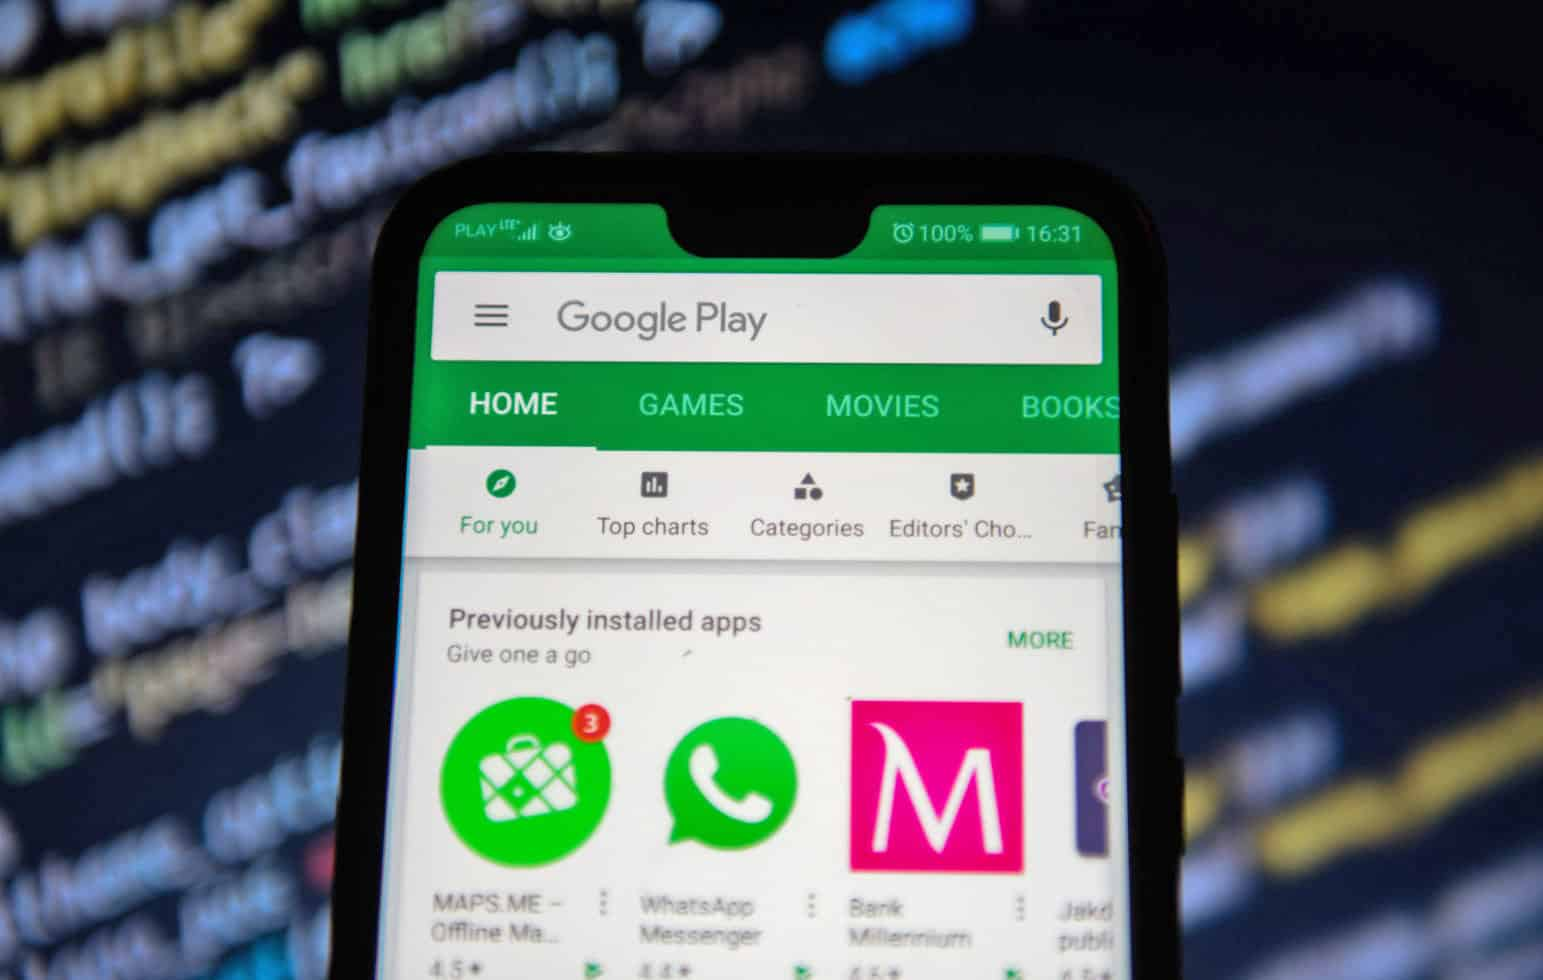 Google deletes these Android apps from the Play Store that stole Facebook passwords